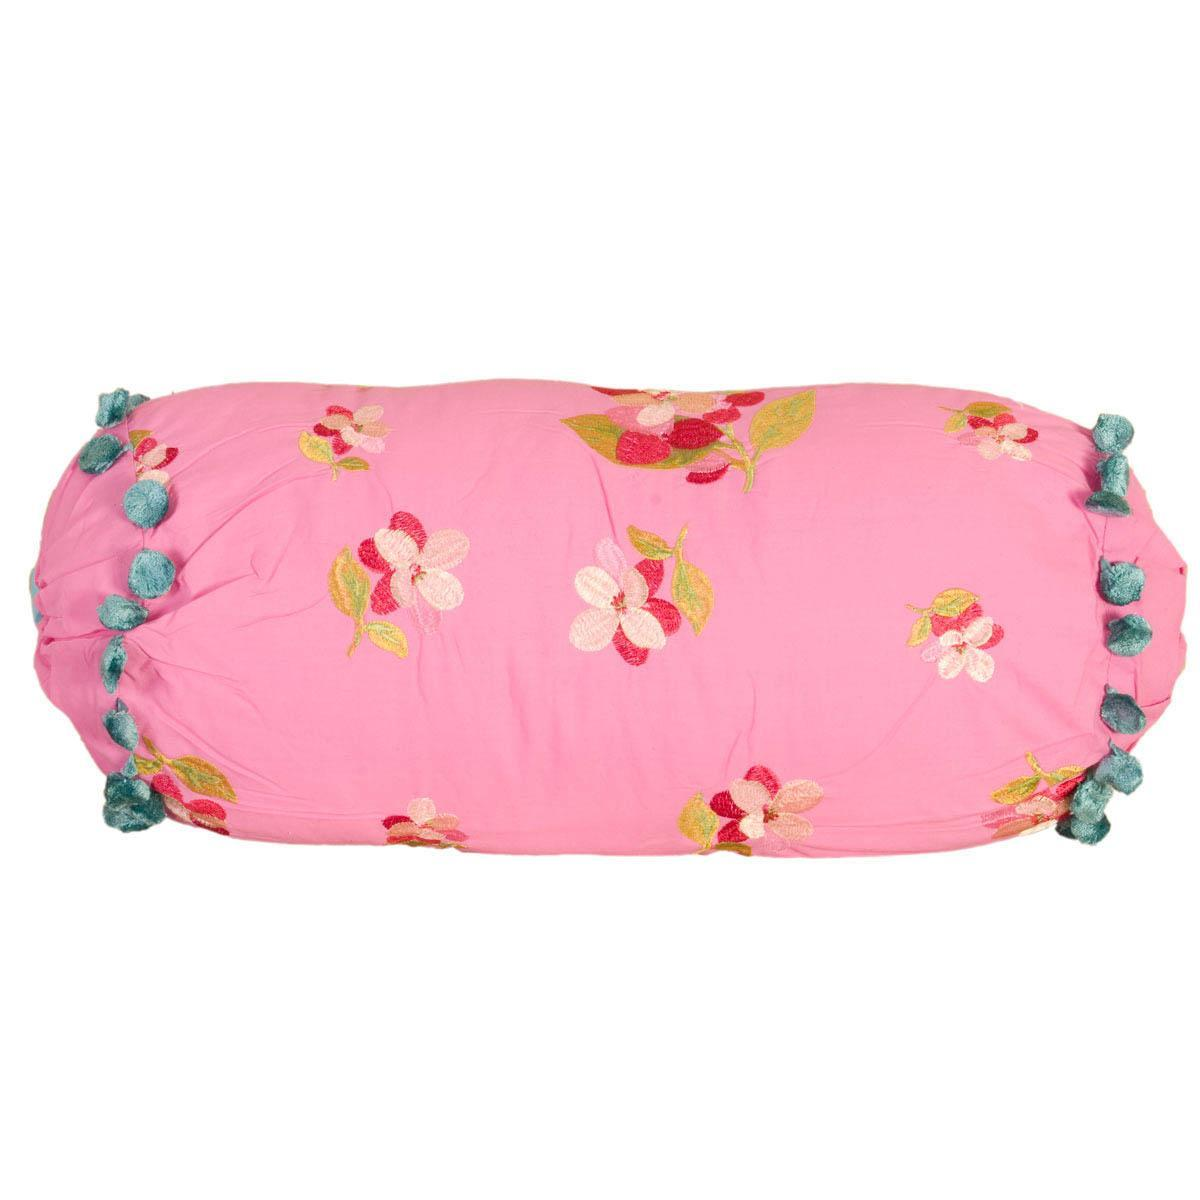 Riva Bedding Milly/Tilly Filled Bolster Cushion Red Picture